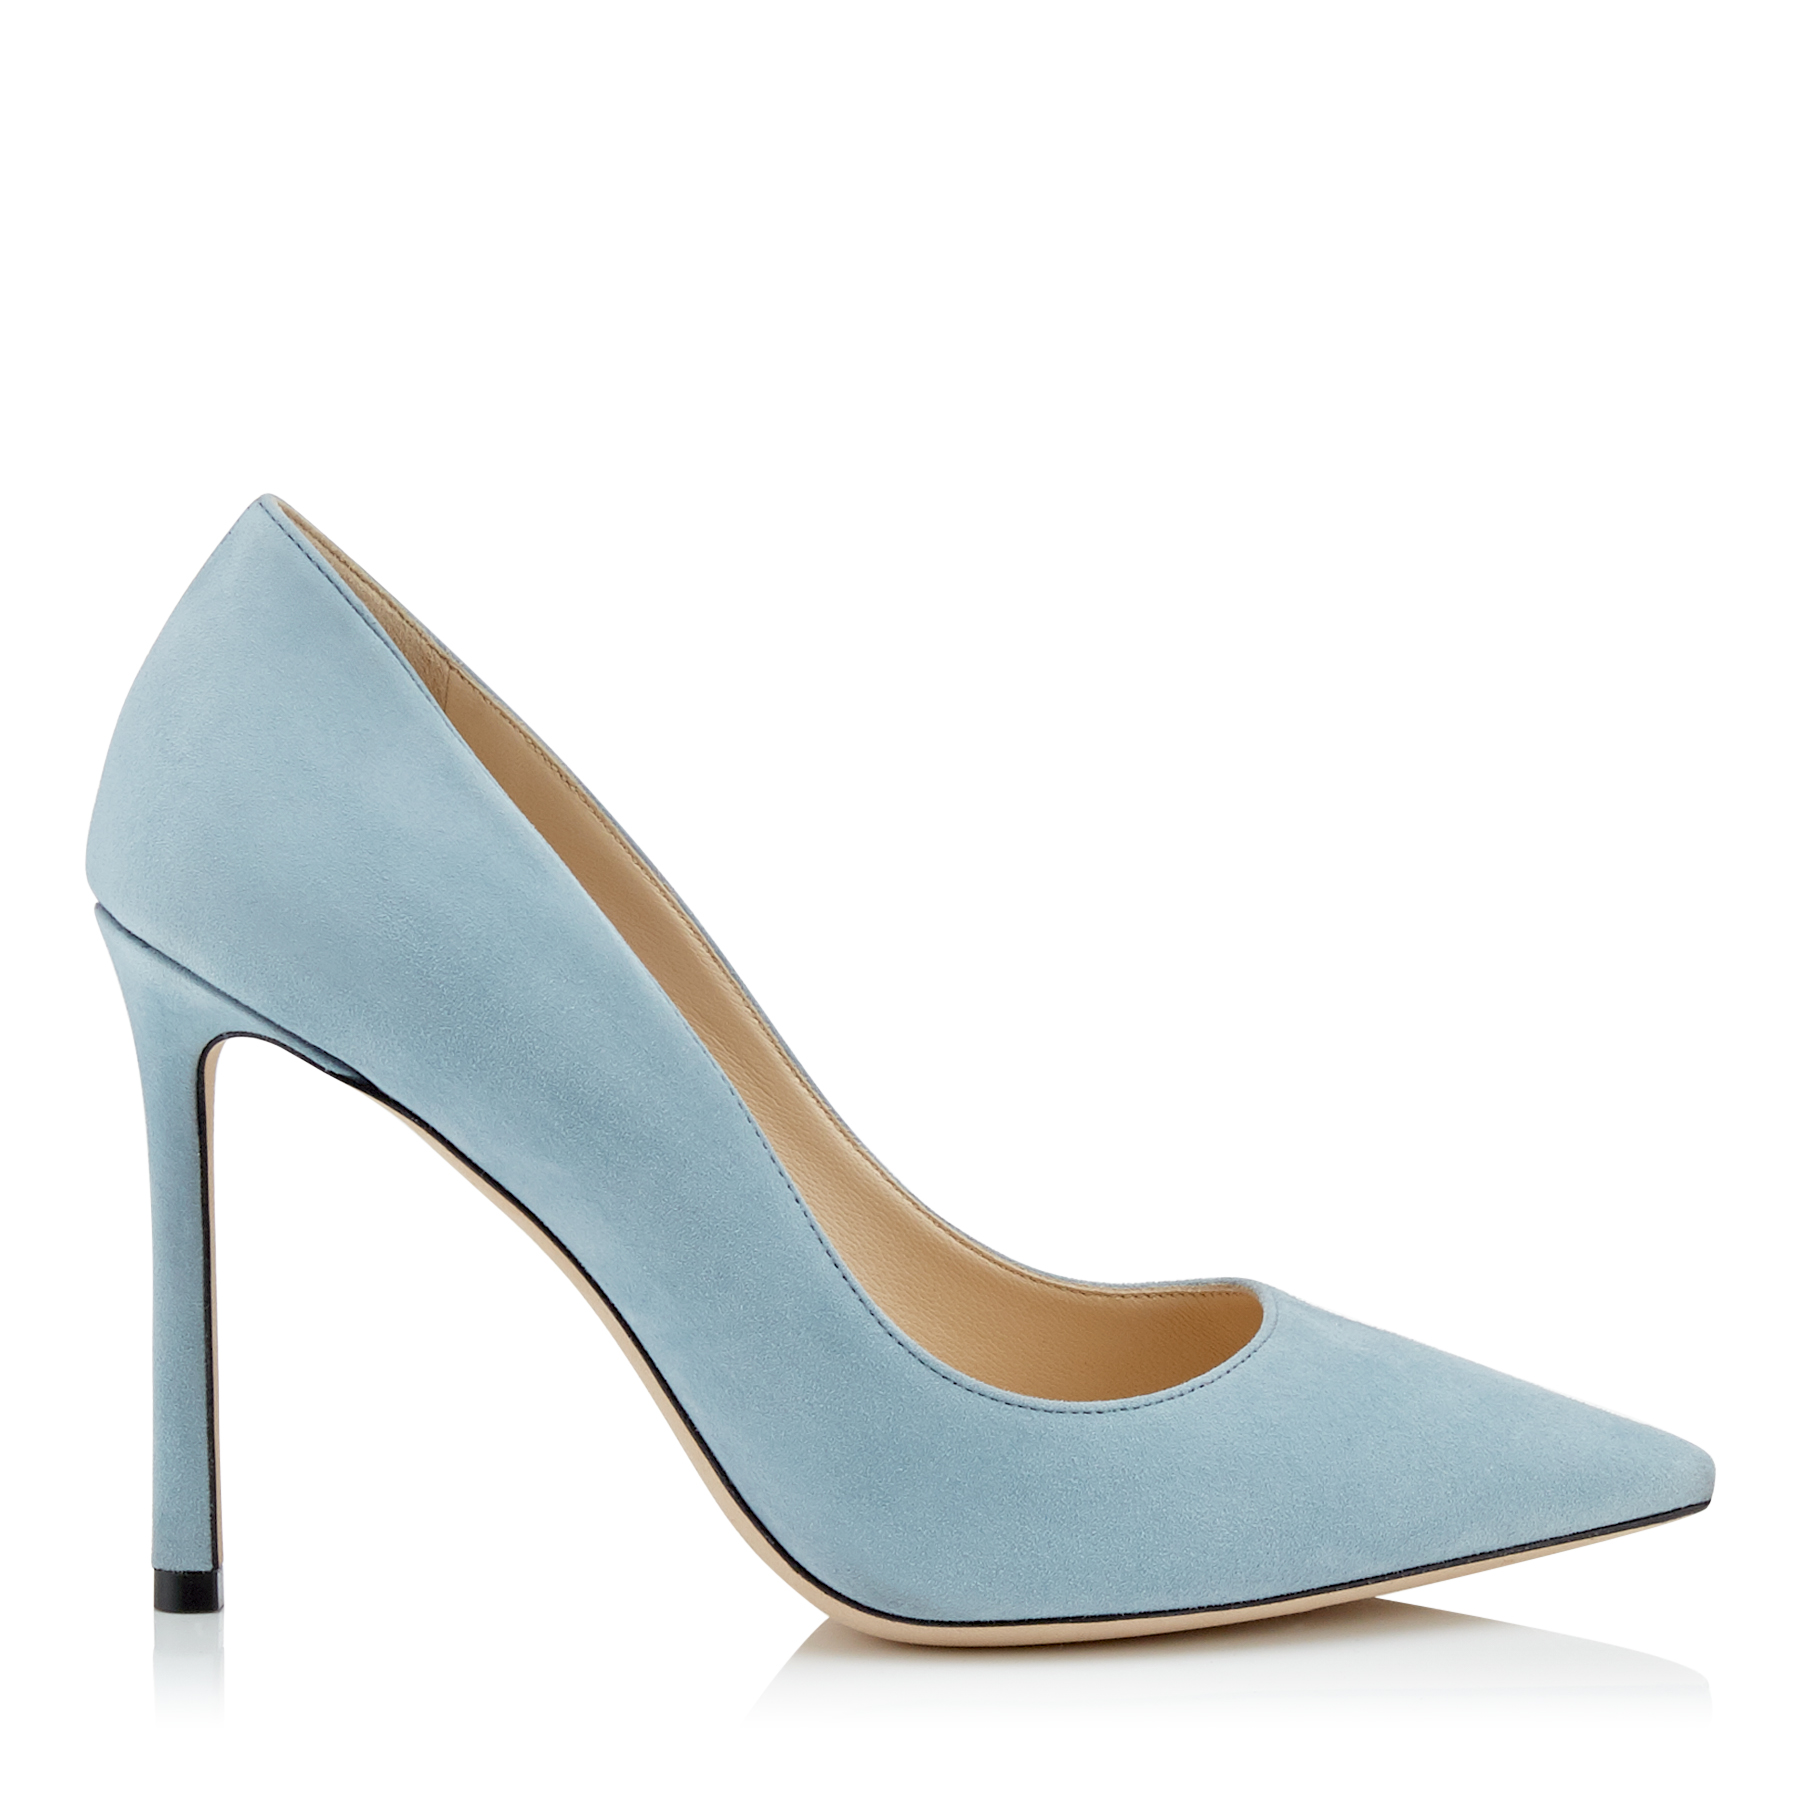 ROMY 100 Aqua Suede Pointy Toe Pumps